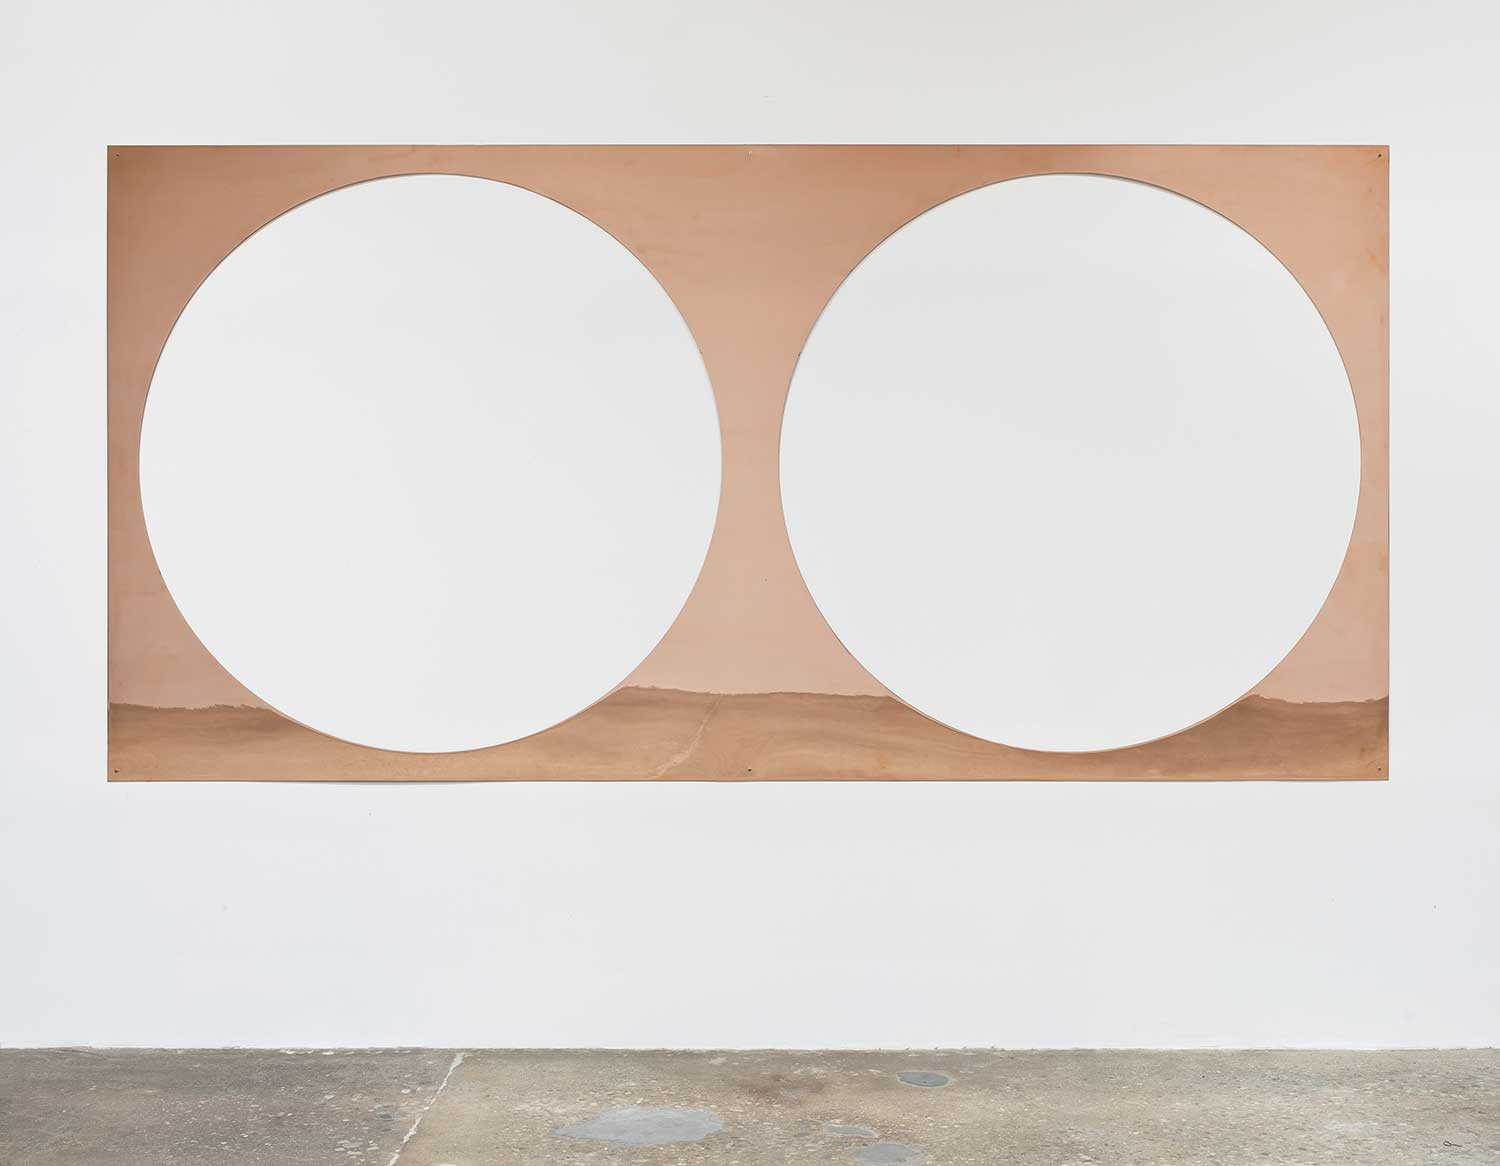 Copper Remnant (Table: designed by unknown, date unknown; Galerie Rodolphe Janssen, Brussels, Belgium, September 6th, 2011), 2012, polished copper, 152.4 x 304.8 cm. Photo: Brian Forrest, courtesy of the artist and Regen Projects, Los Angeles